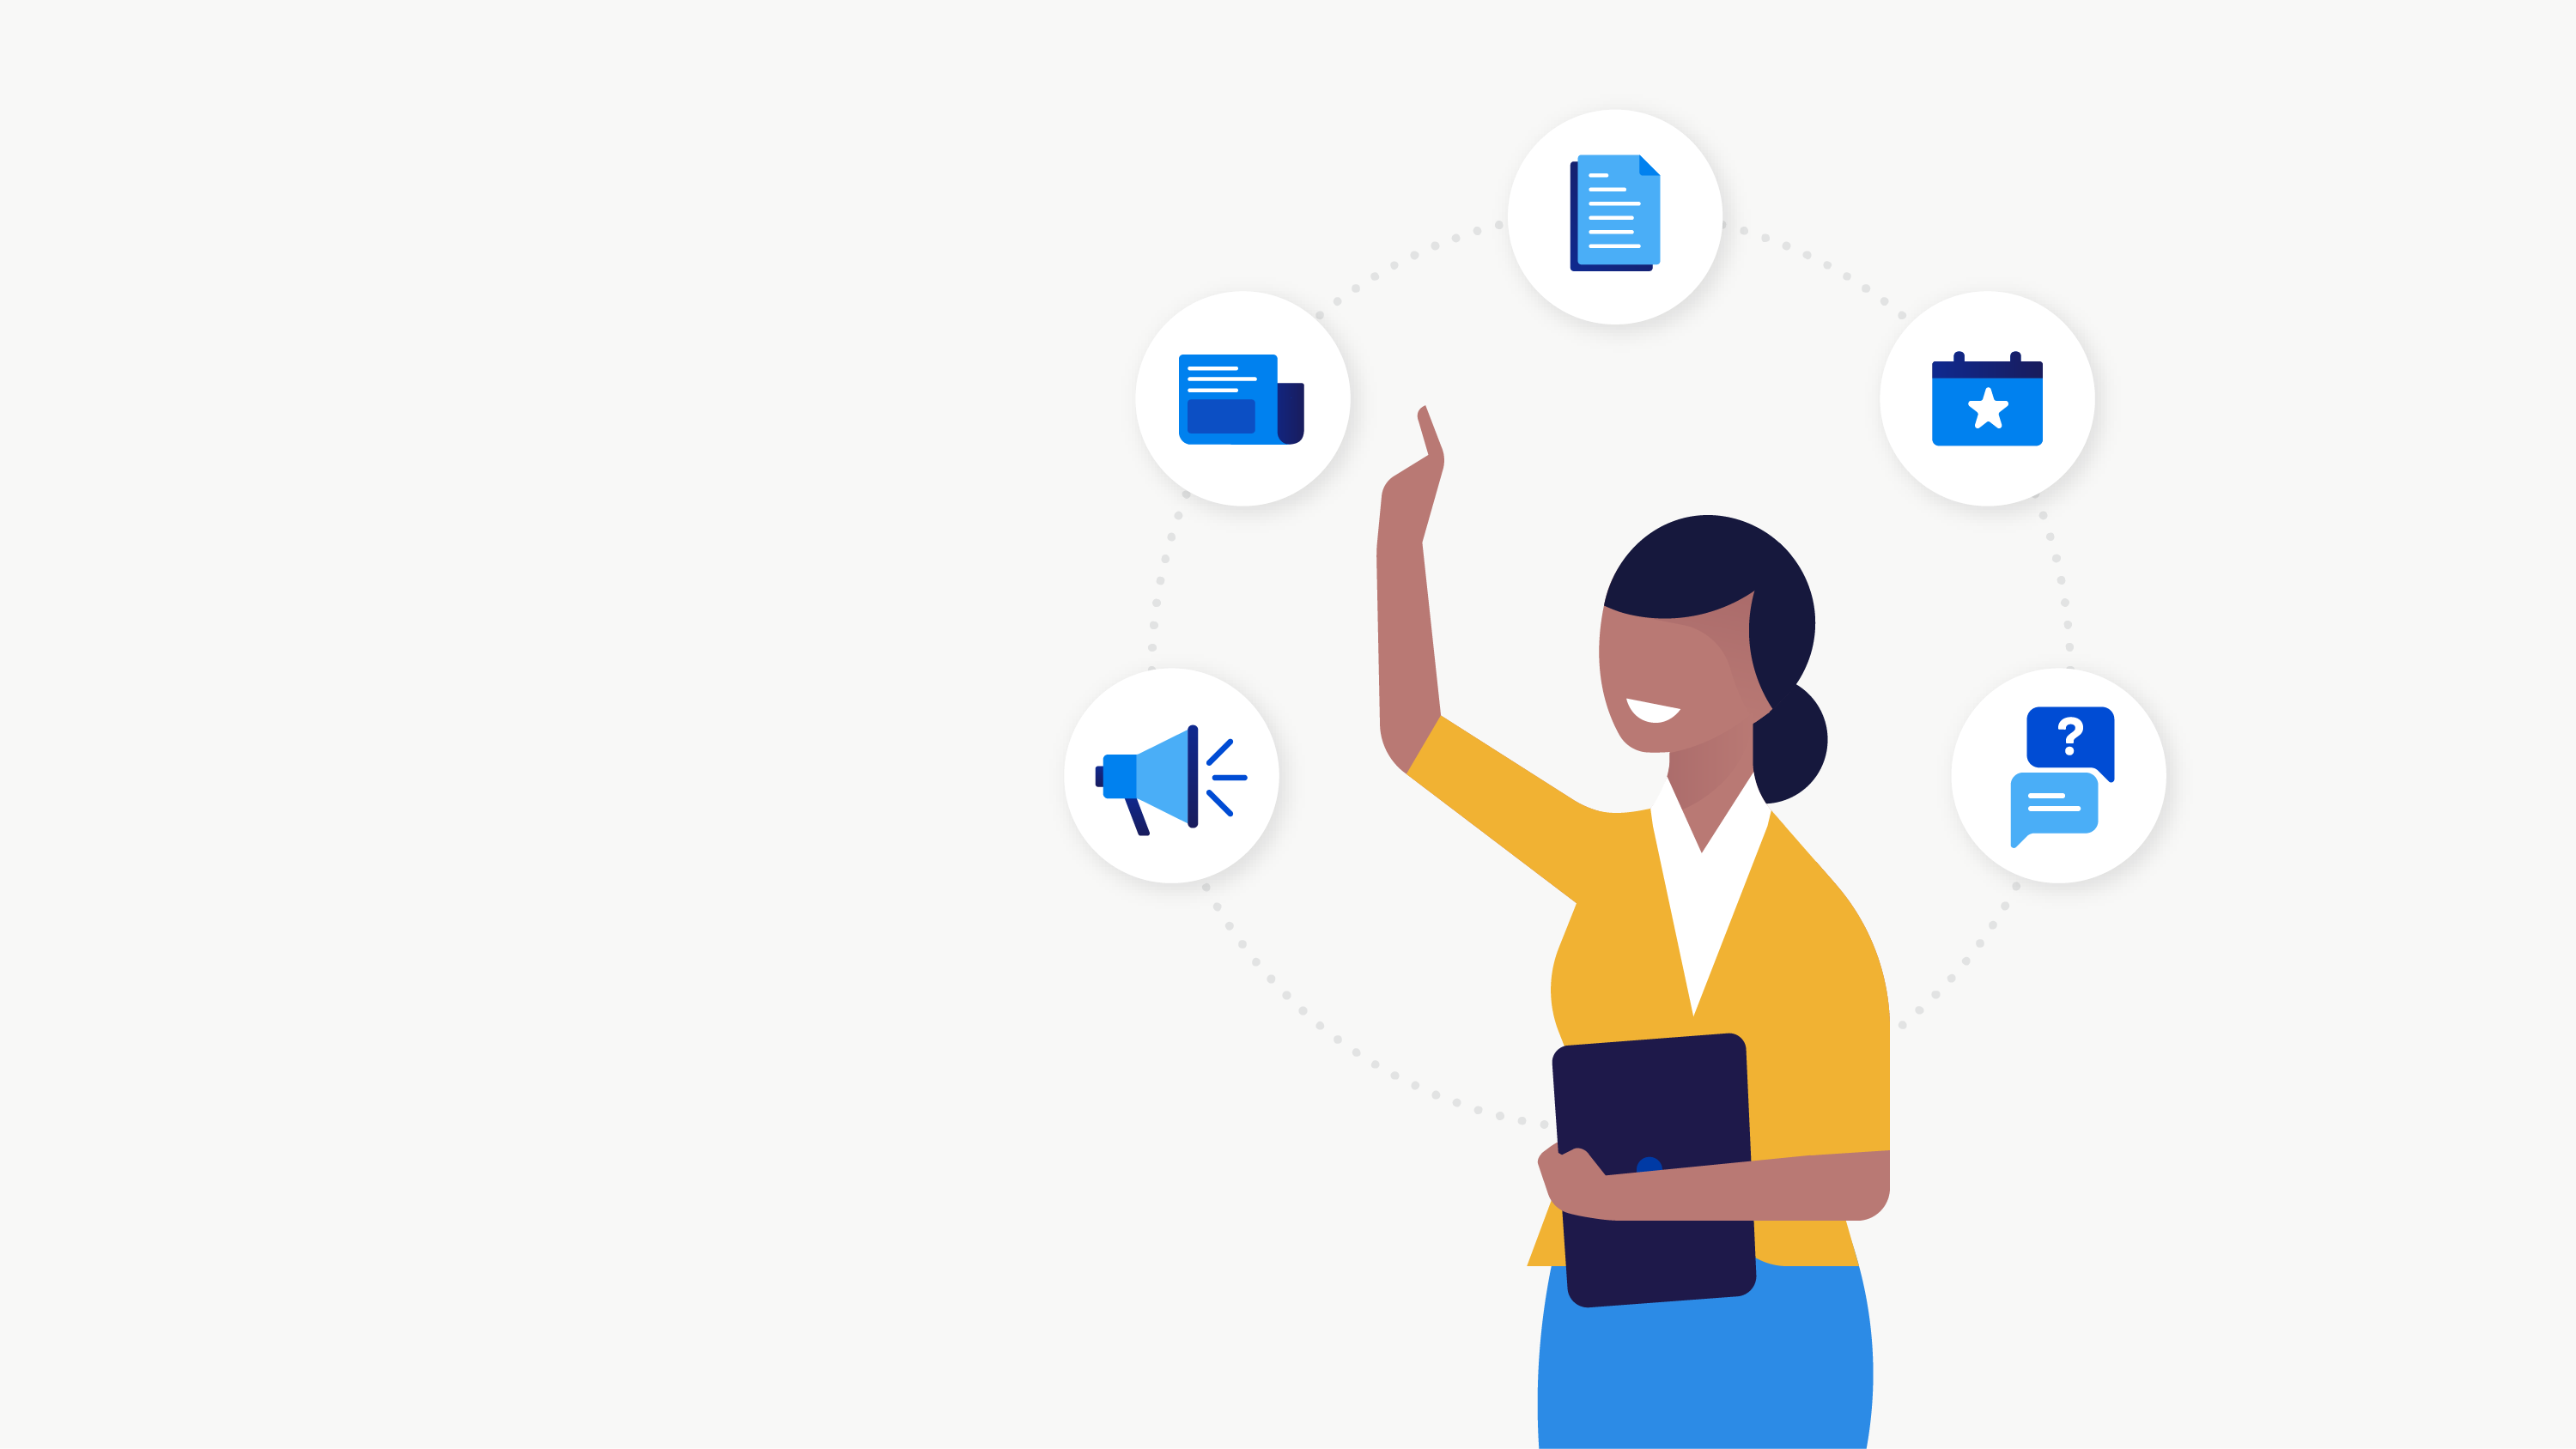 Illustration of a woman choosing from icons that represent latest product updates, blog posts, resources, upcoming events and contact information